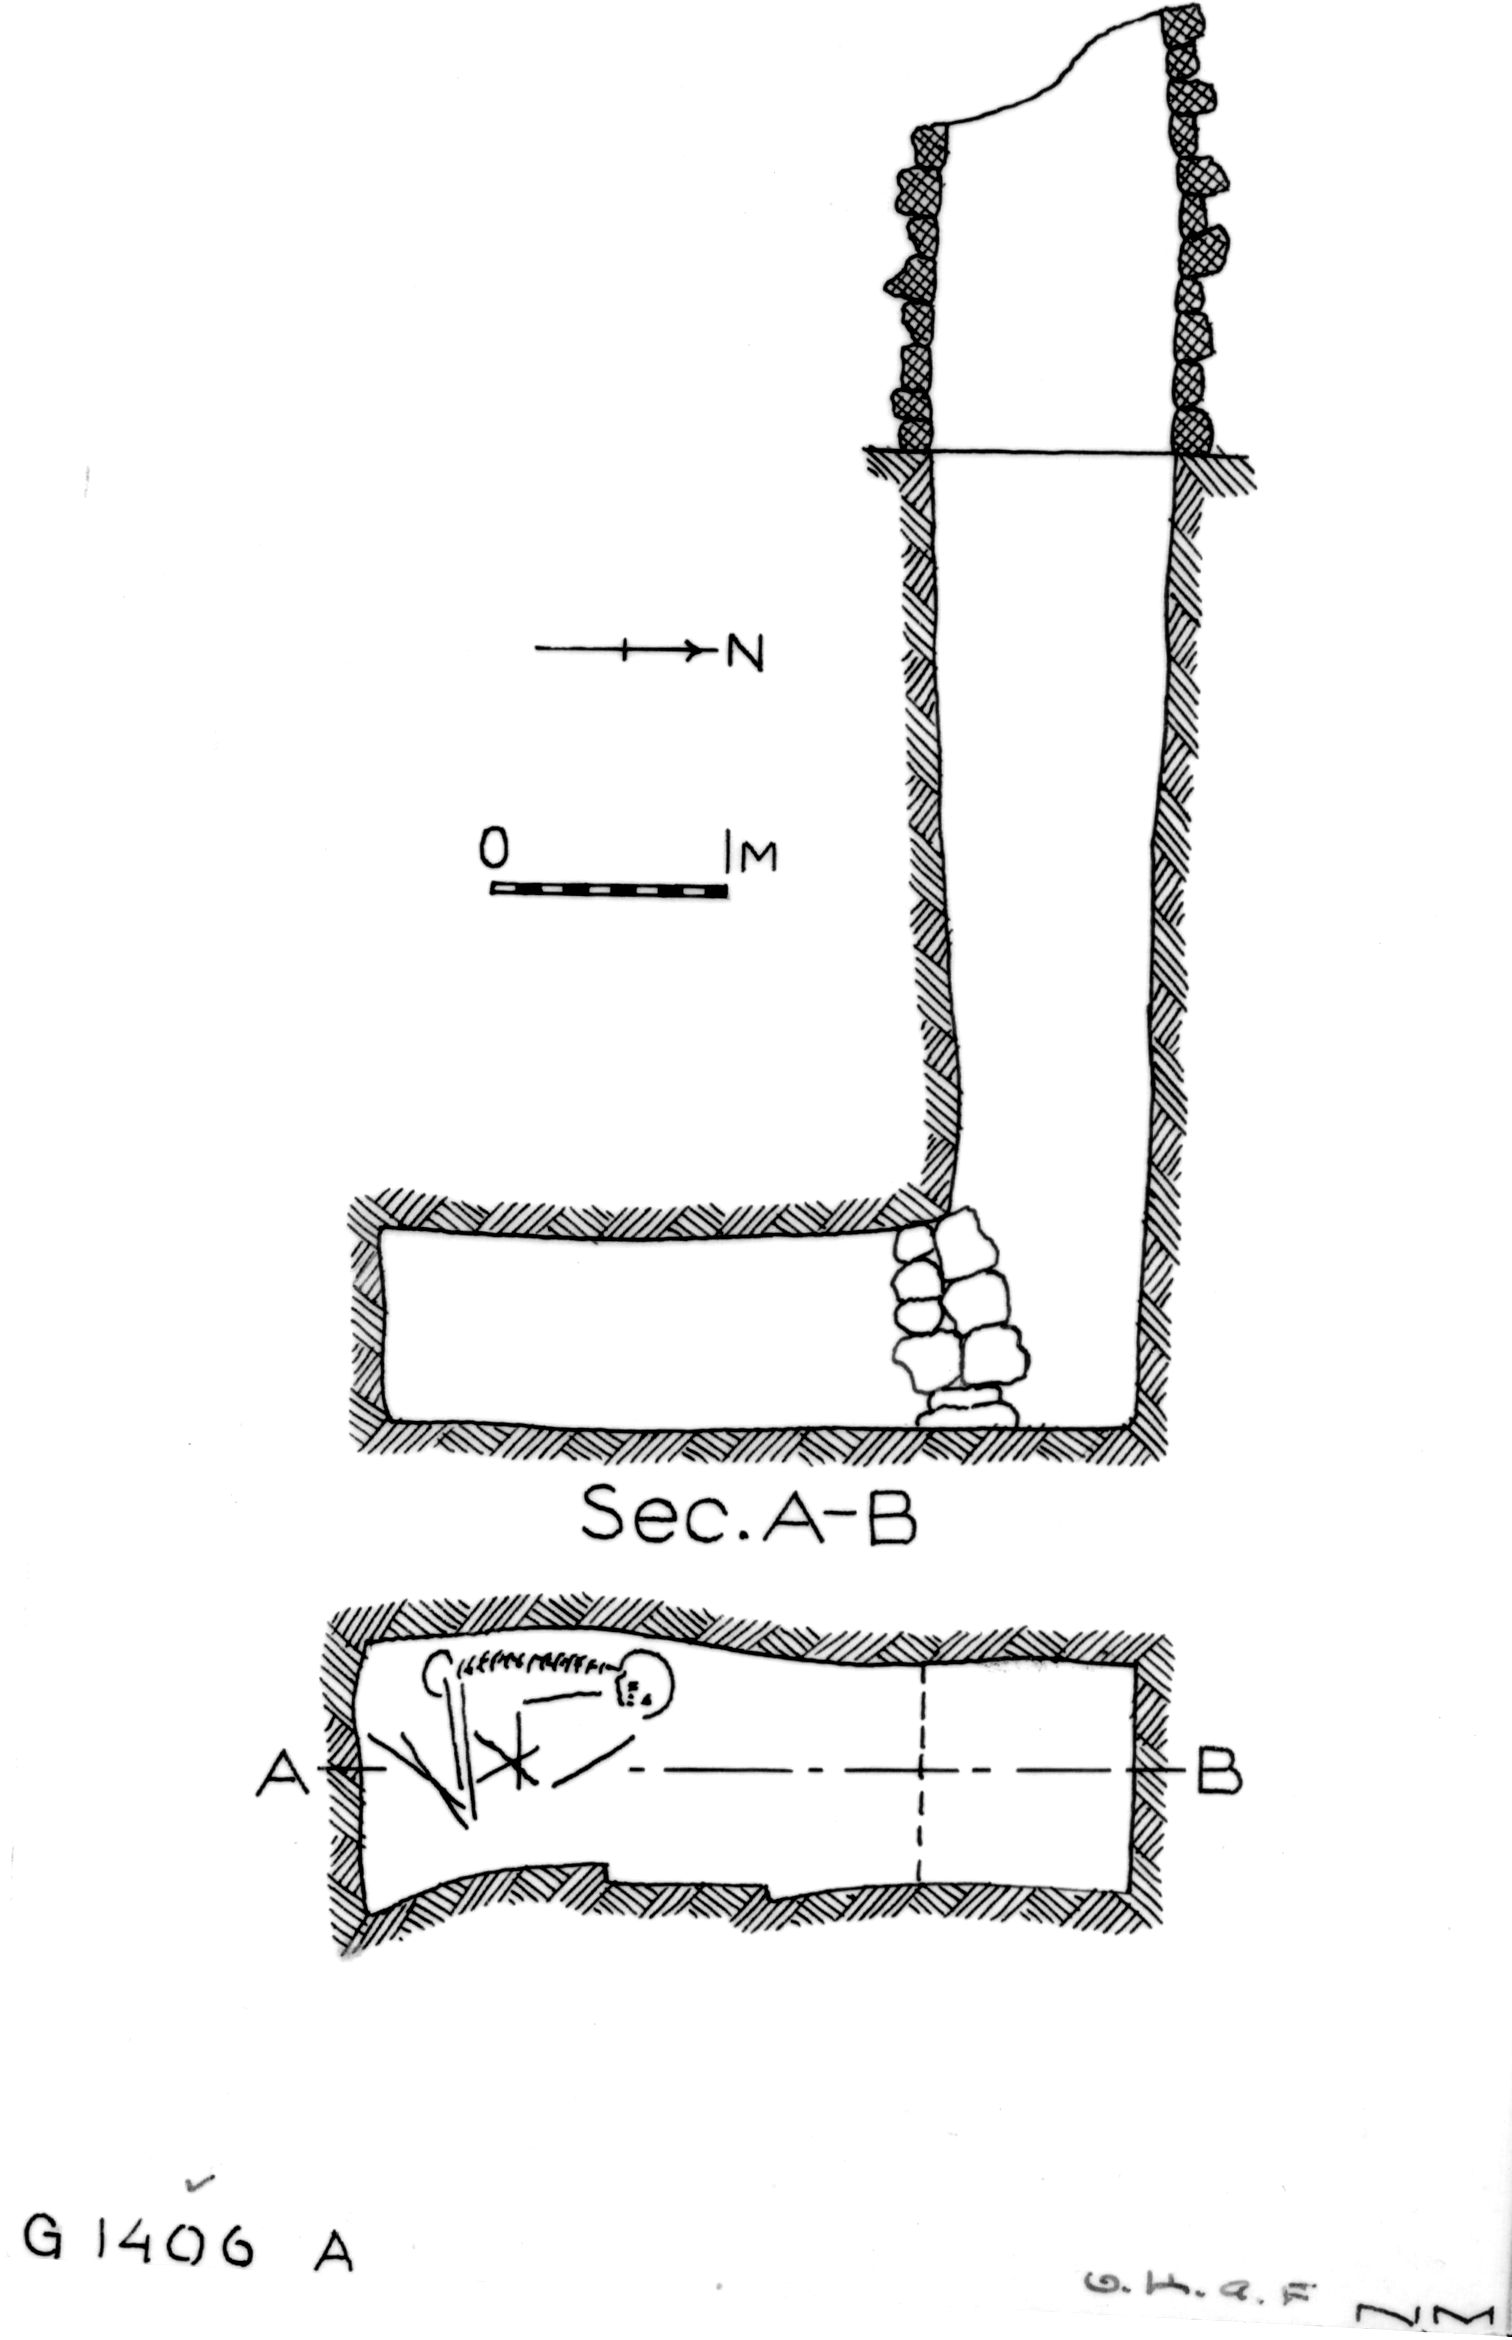 Maps and plans: G 1406, Shaft A